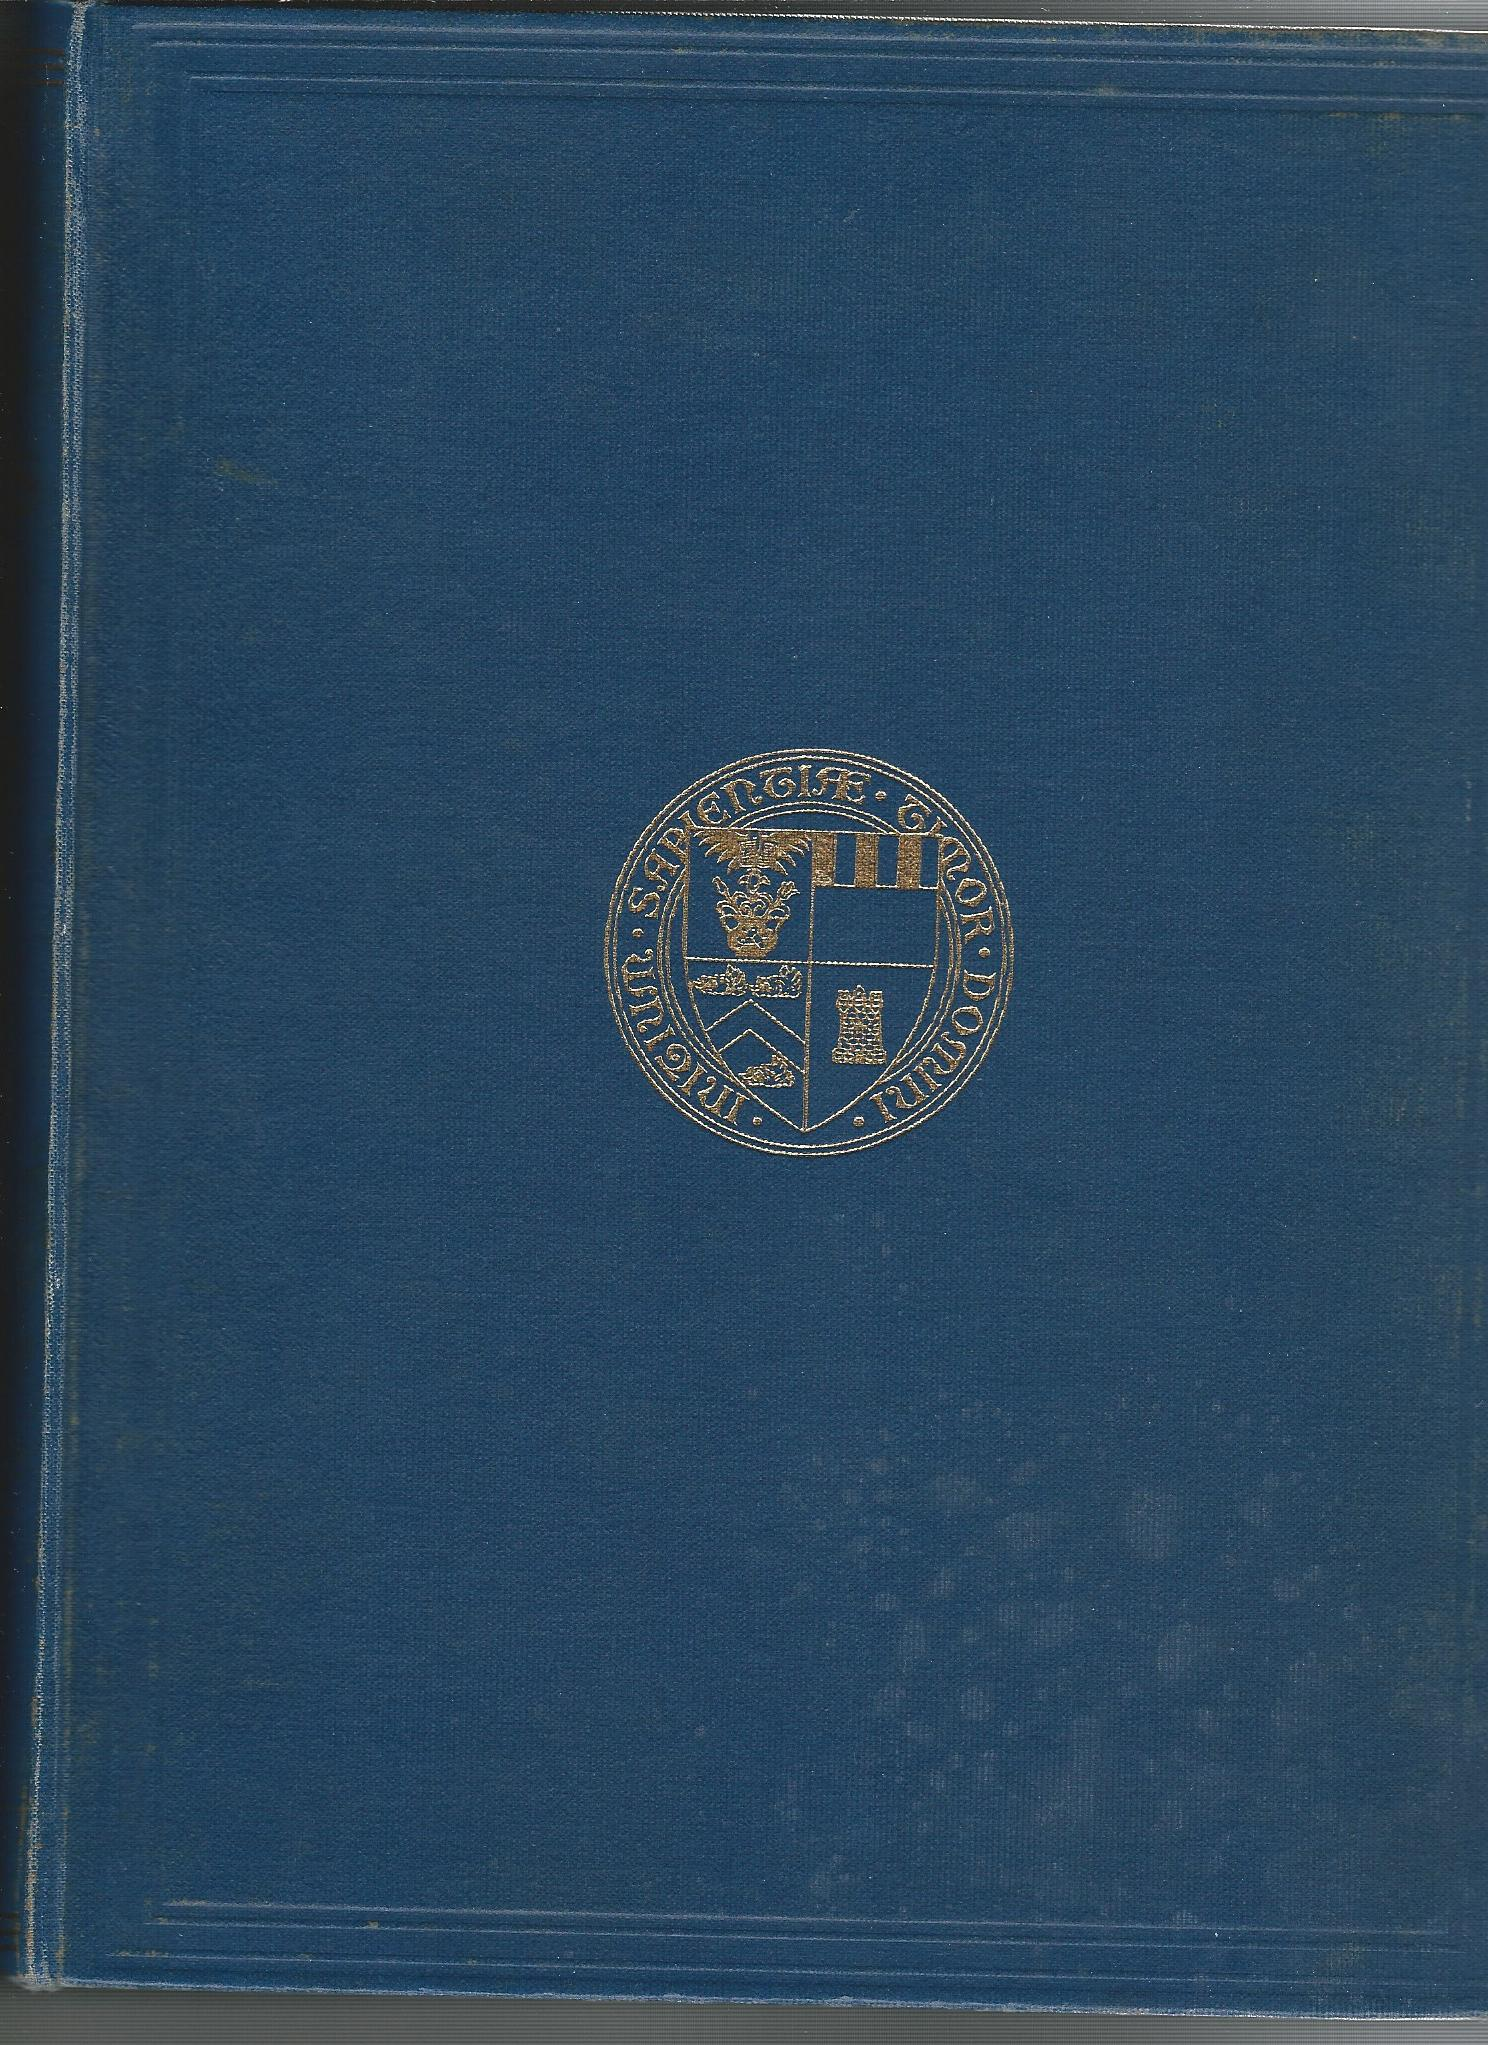 Image for Roll of Graduates of the Aberdeen University 1926 -1955 with Supplement 1860-1925